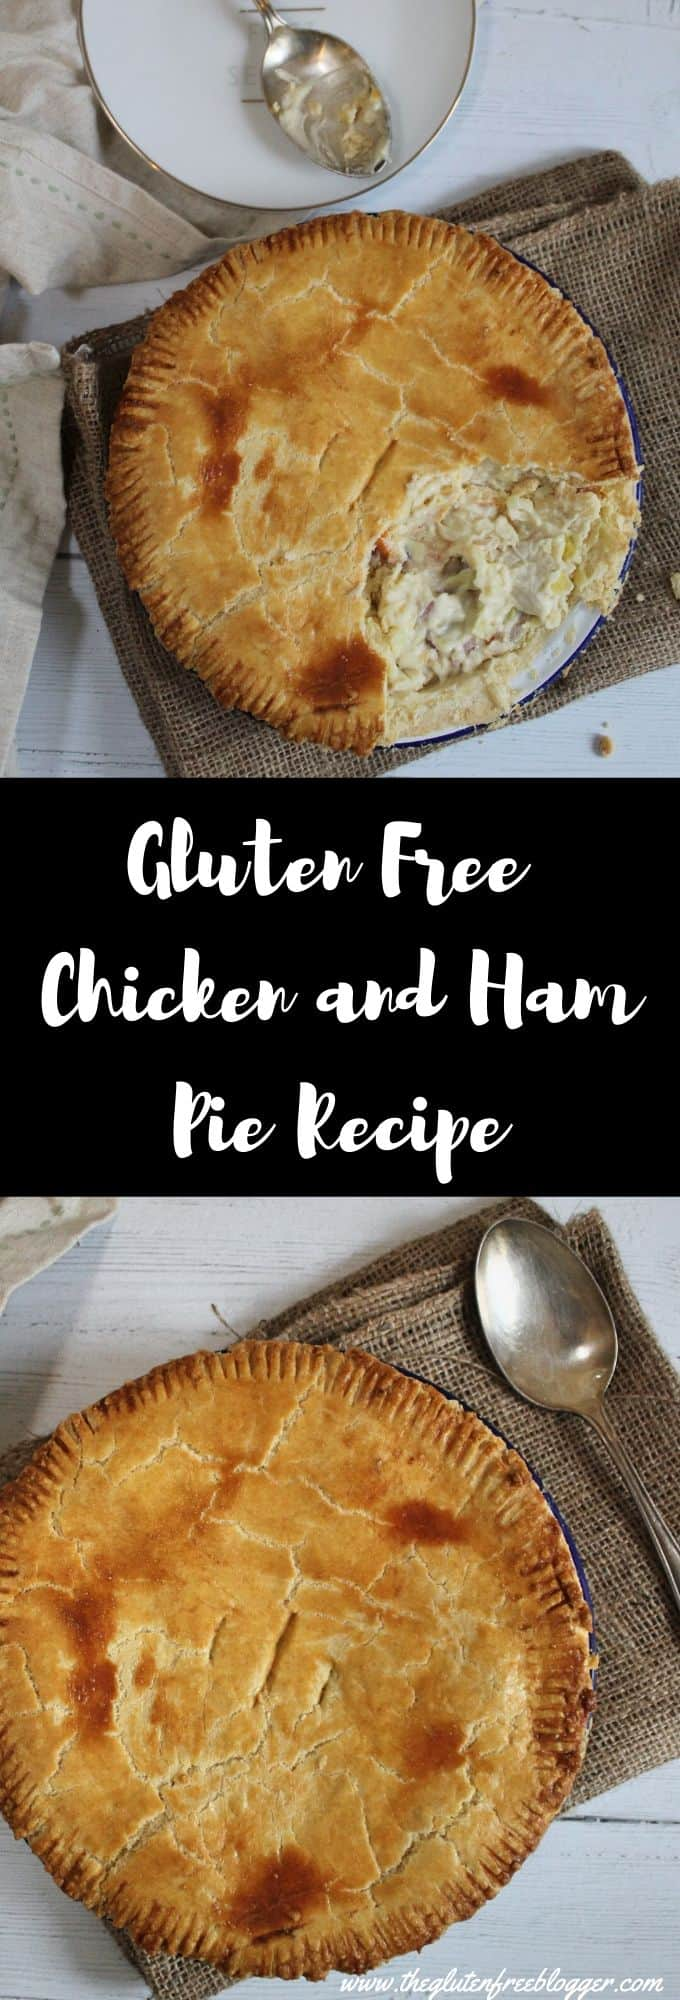 gluten free chicken and ham pie recipe roast dinner christmas leftovers recipe food waste ideas